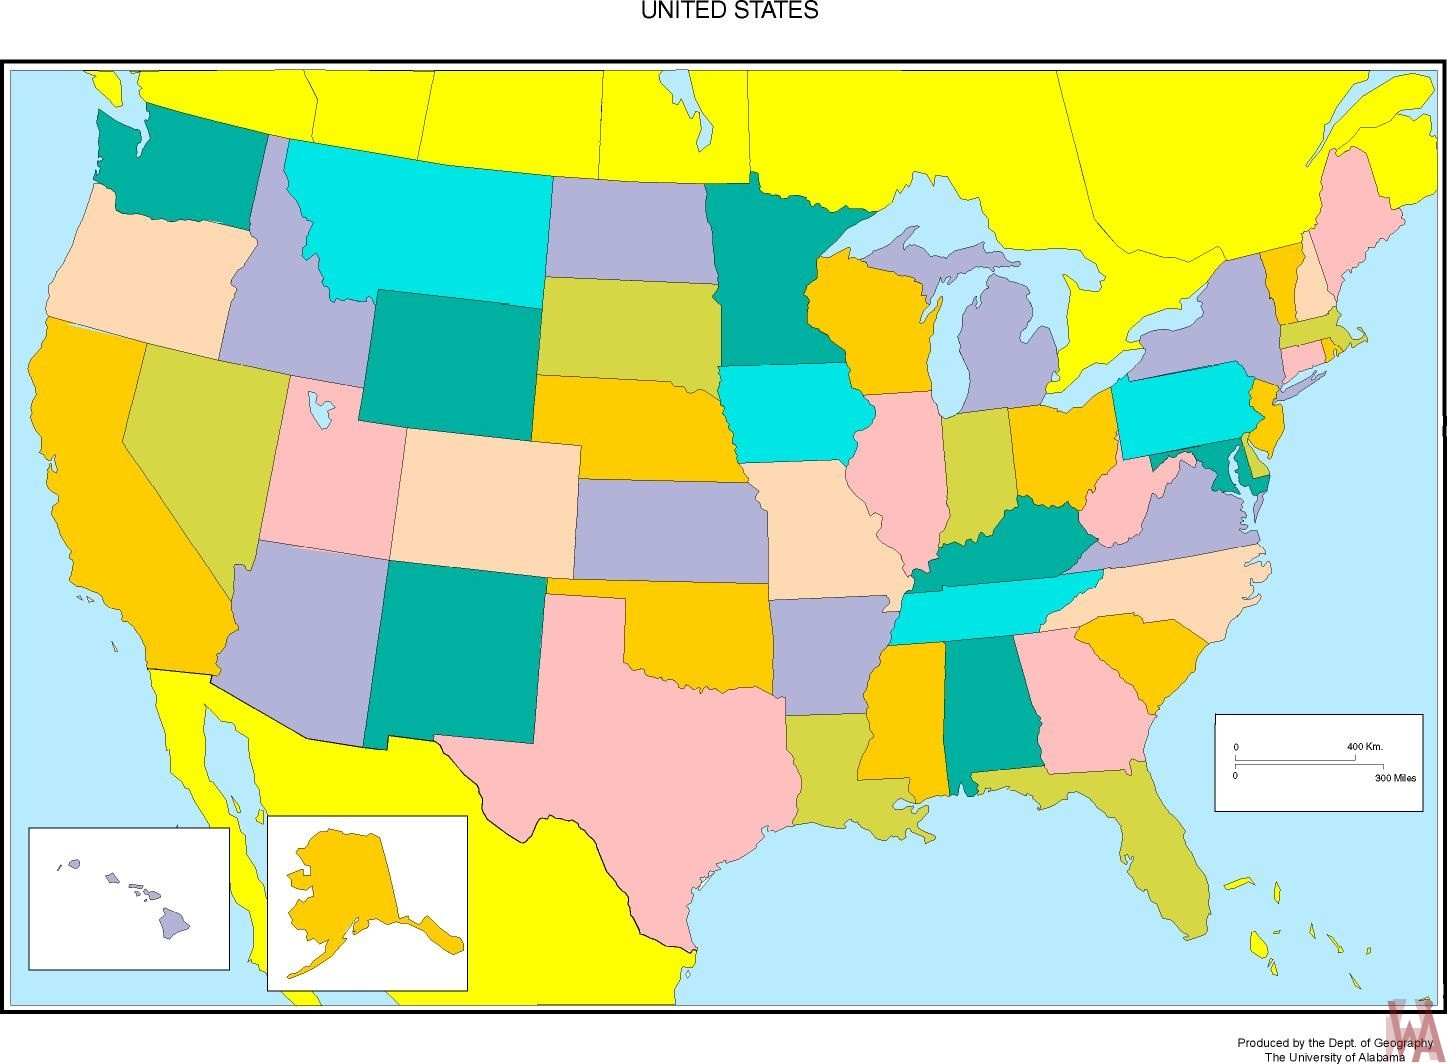 Blank color outline map of the United States. 1 | WhatsAnswer